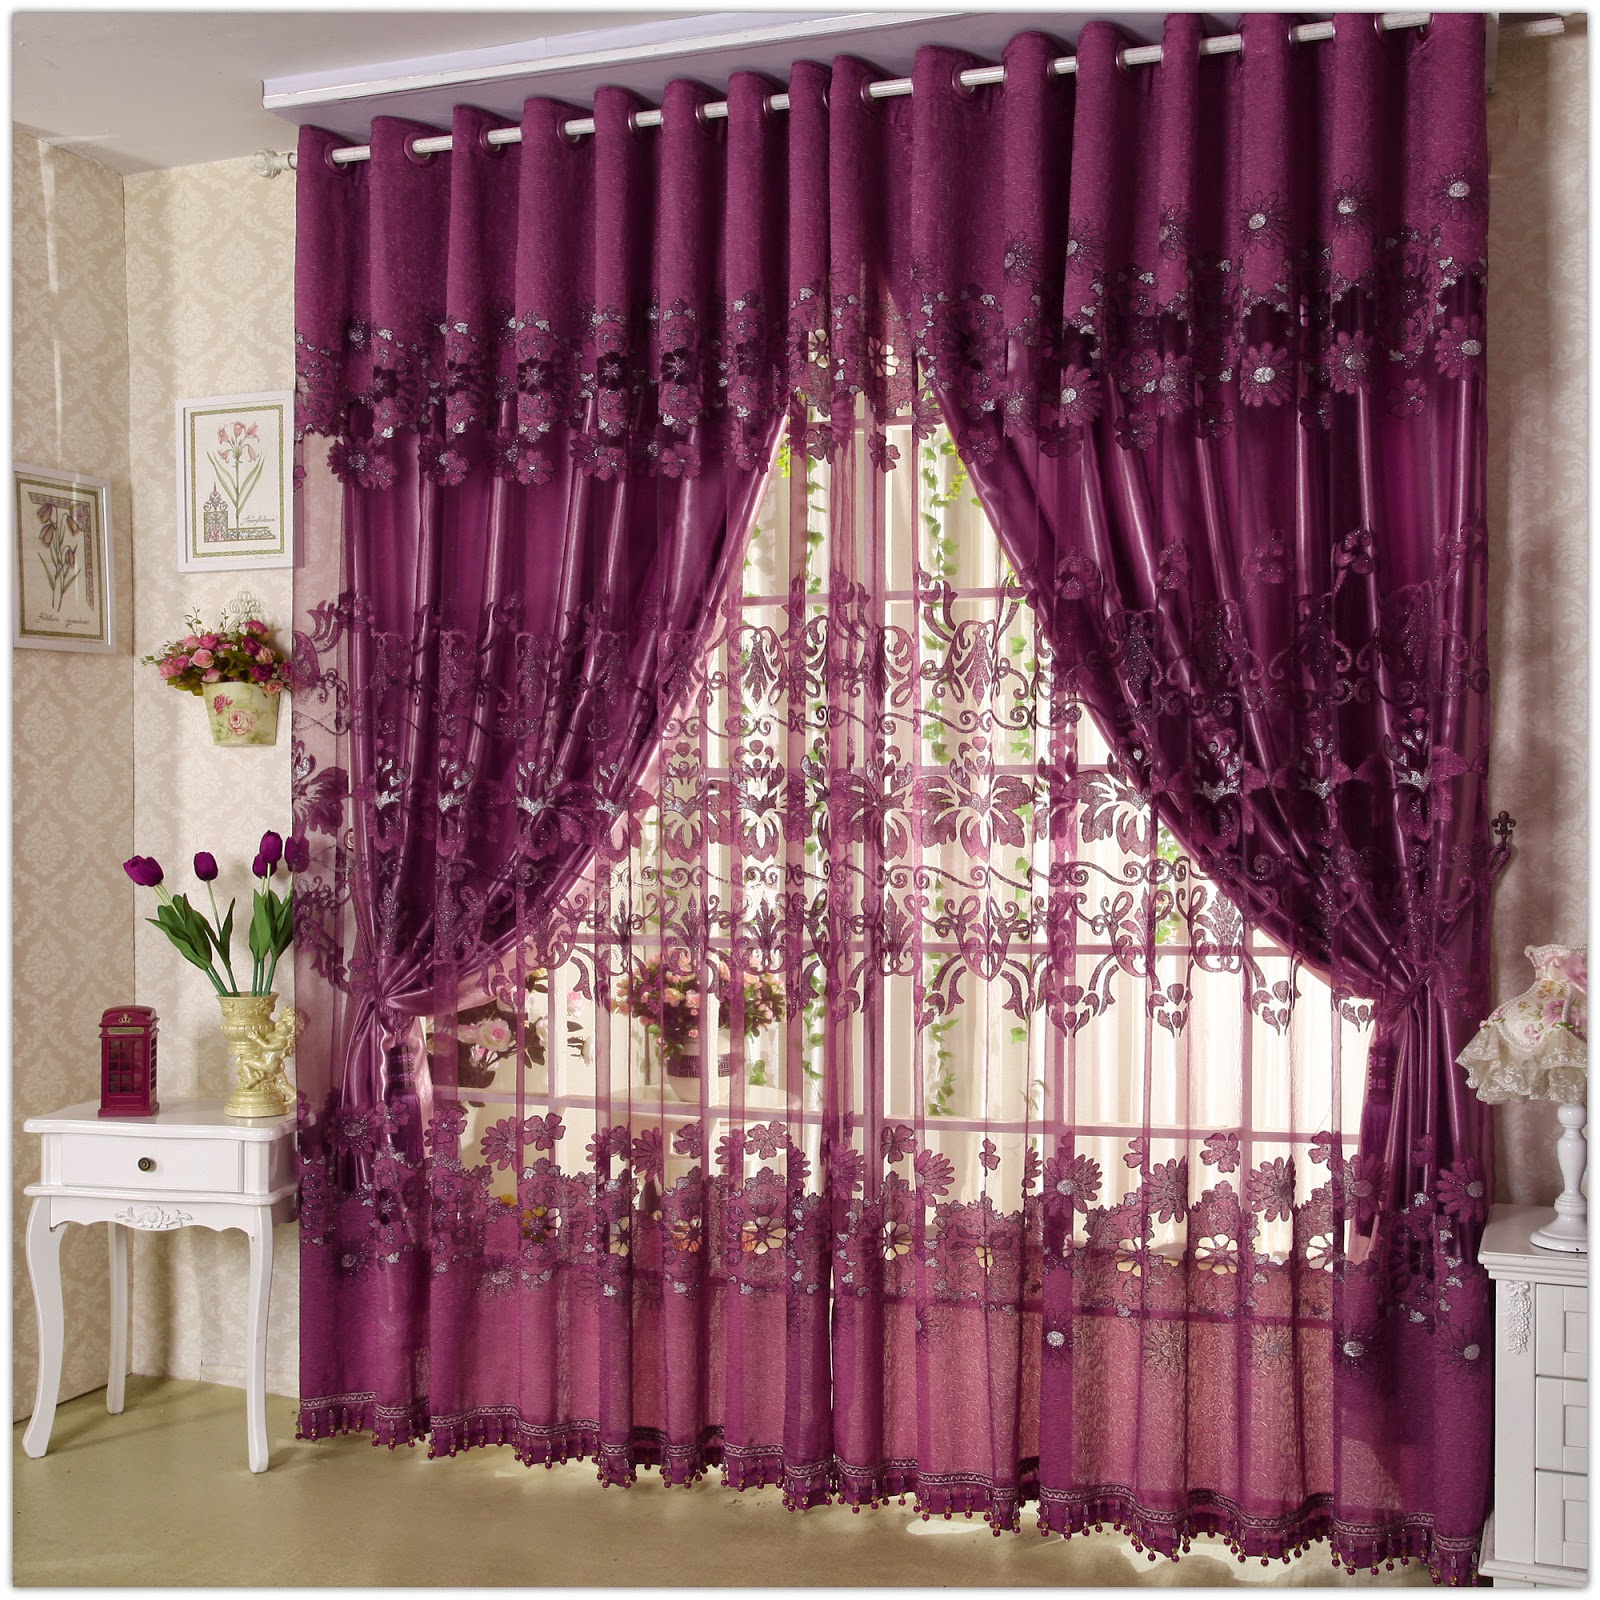 Living Room Curtains Unique Curtain Designs For Living Room Window Decorations